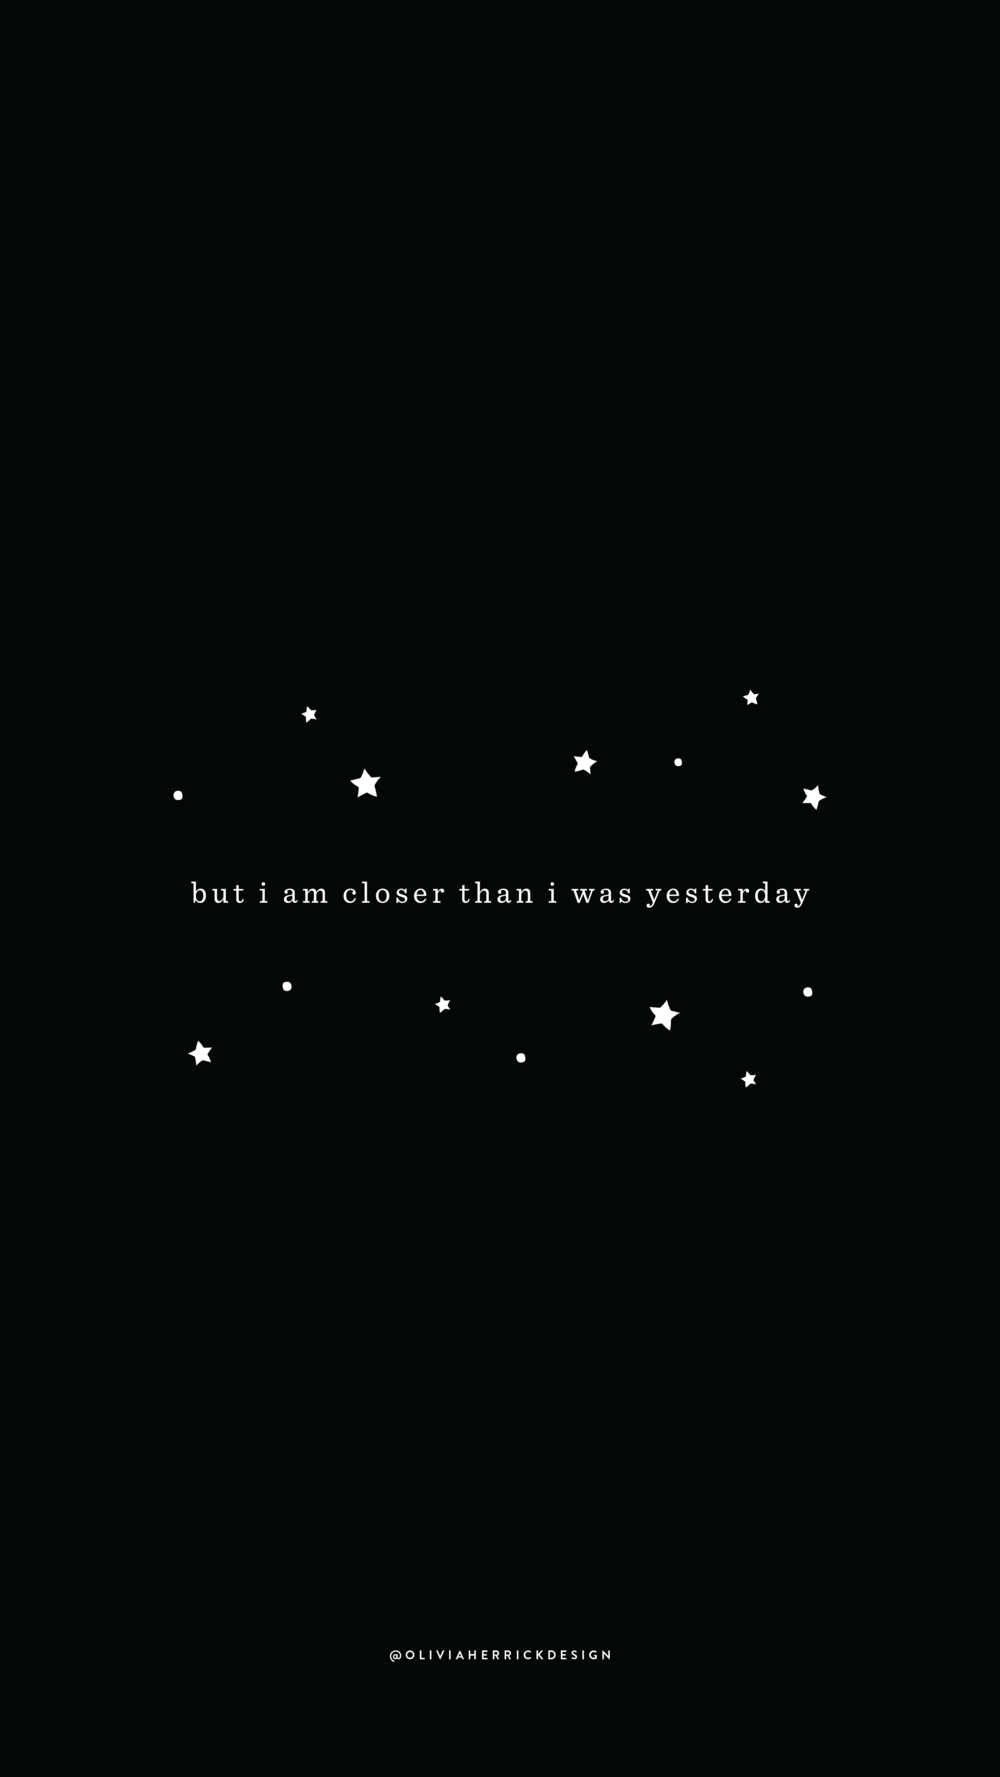 olivia-herrick-design-closer-than-yesterday-3.png